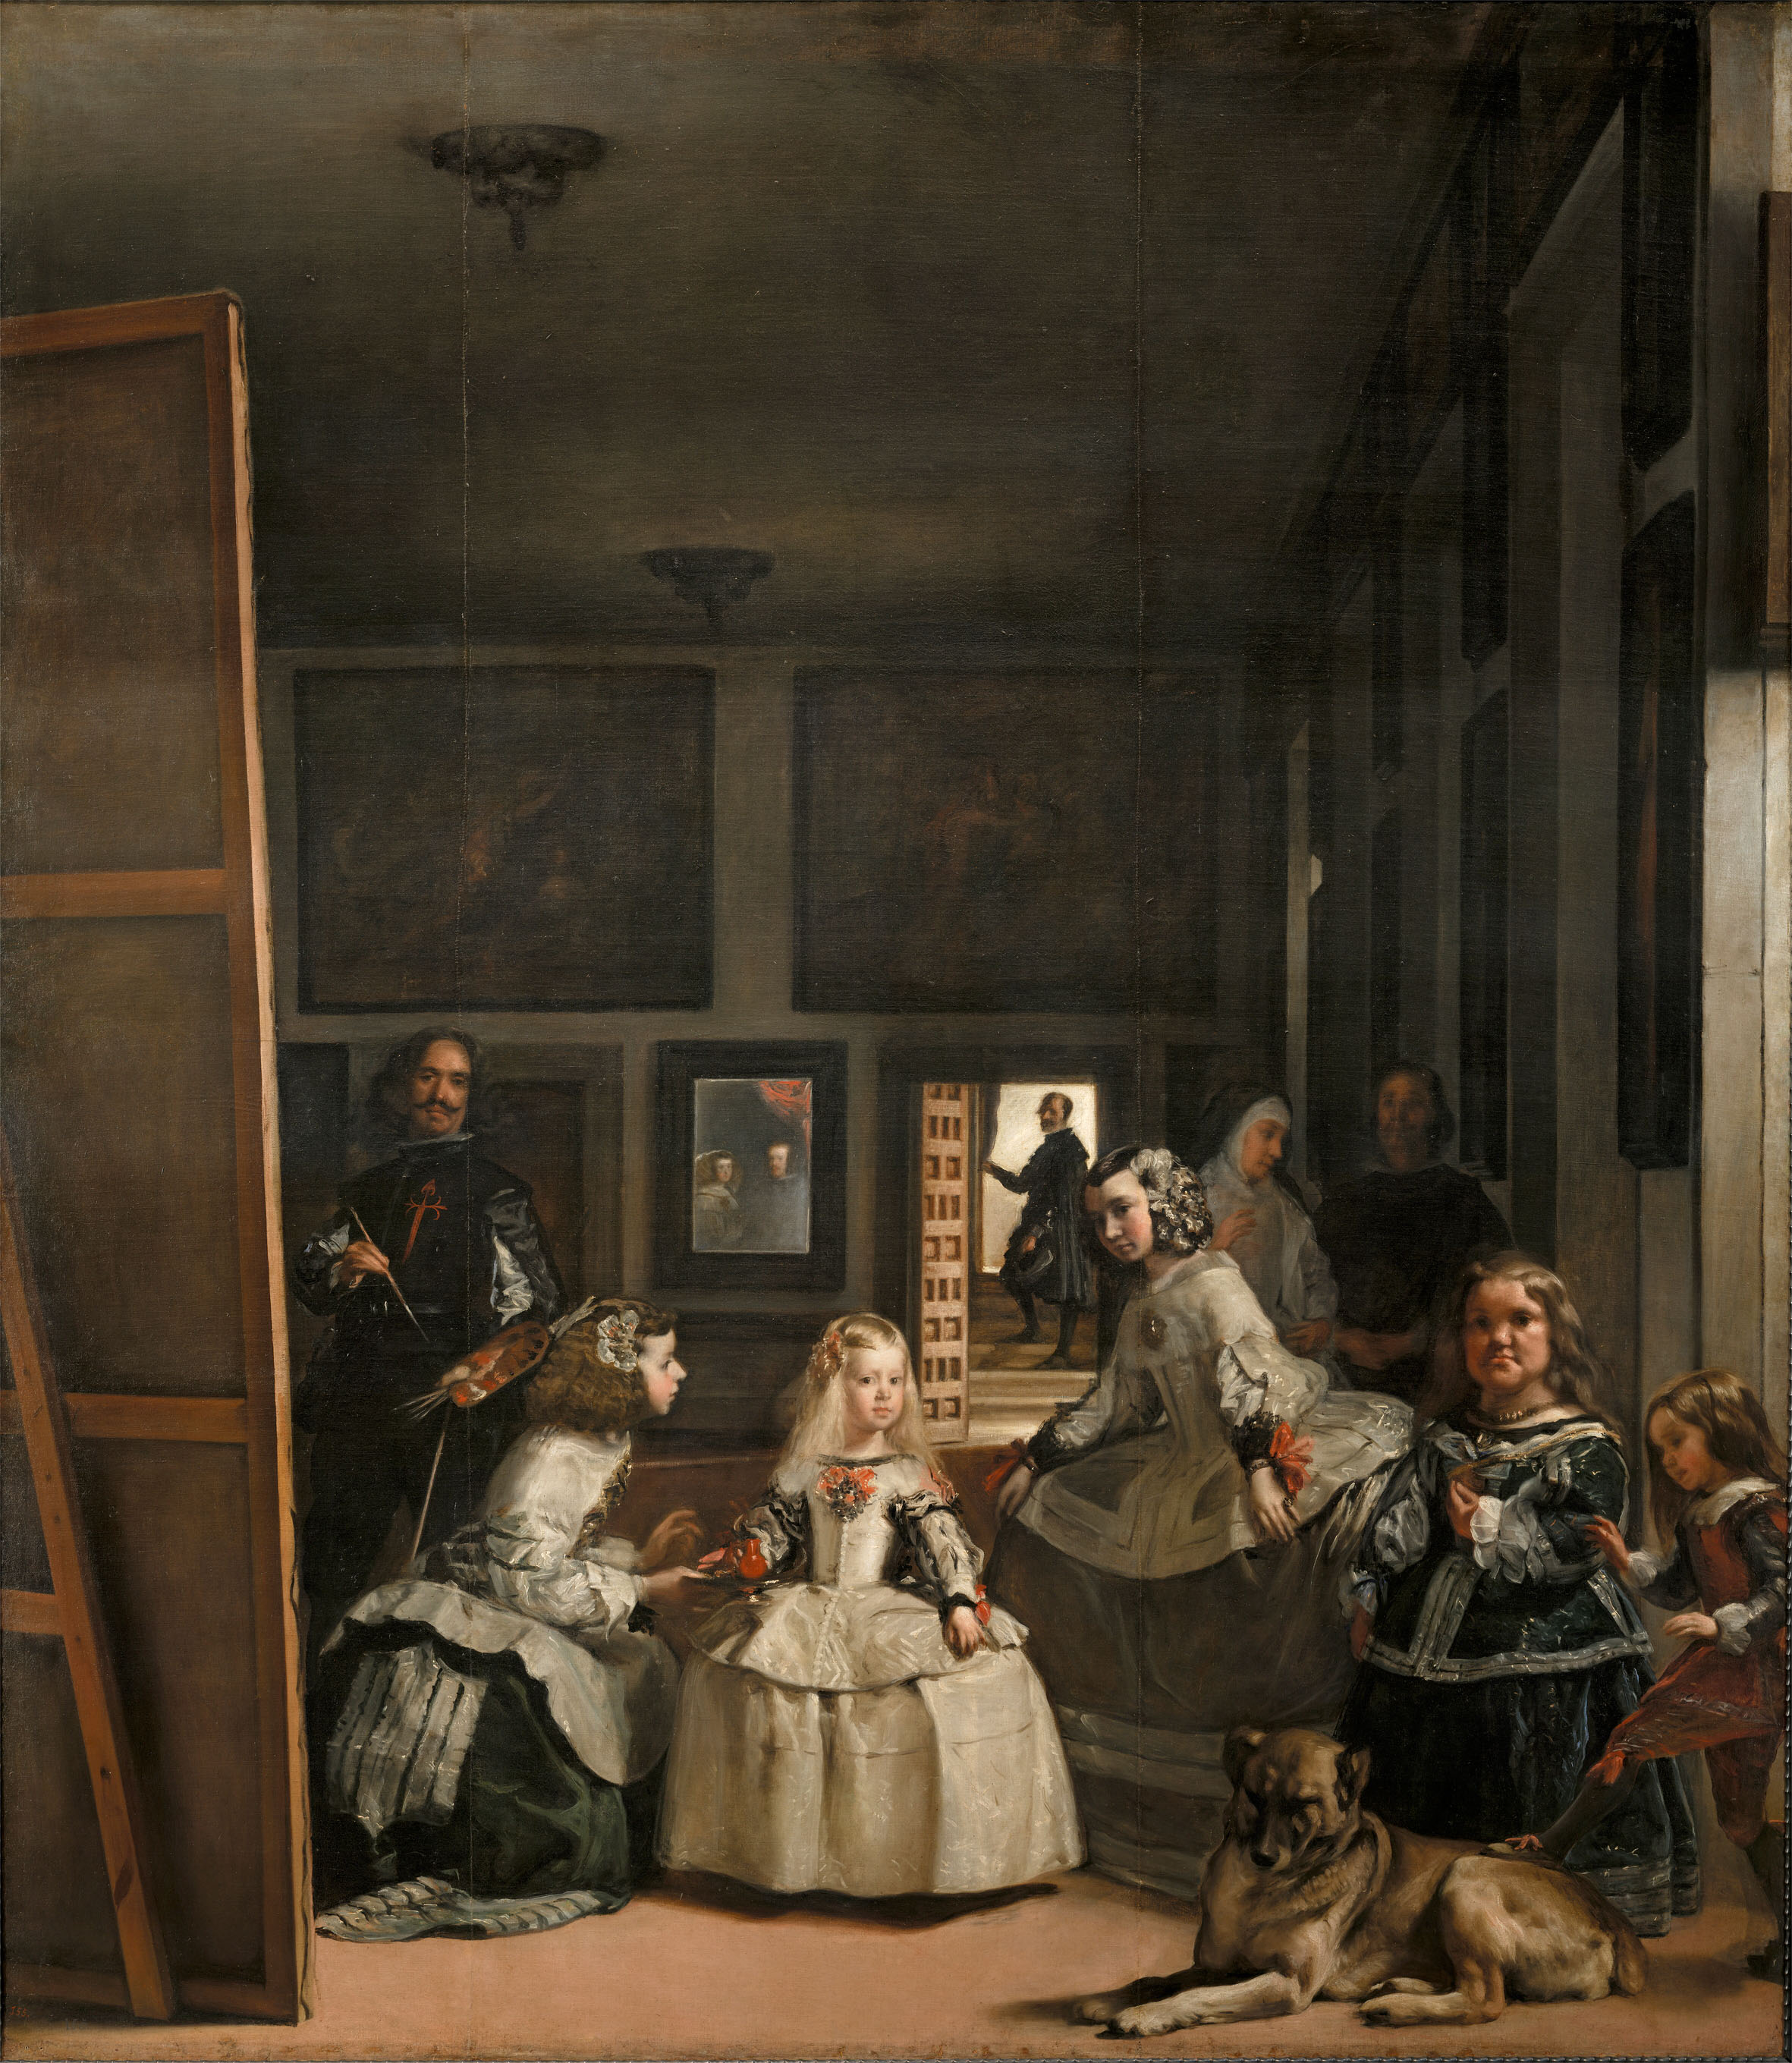 Las Meninas, or The Family of King Philip IV, Velázquez